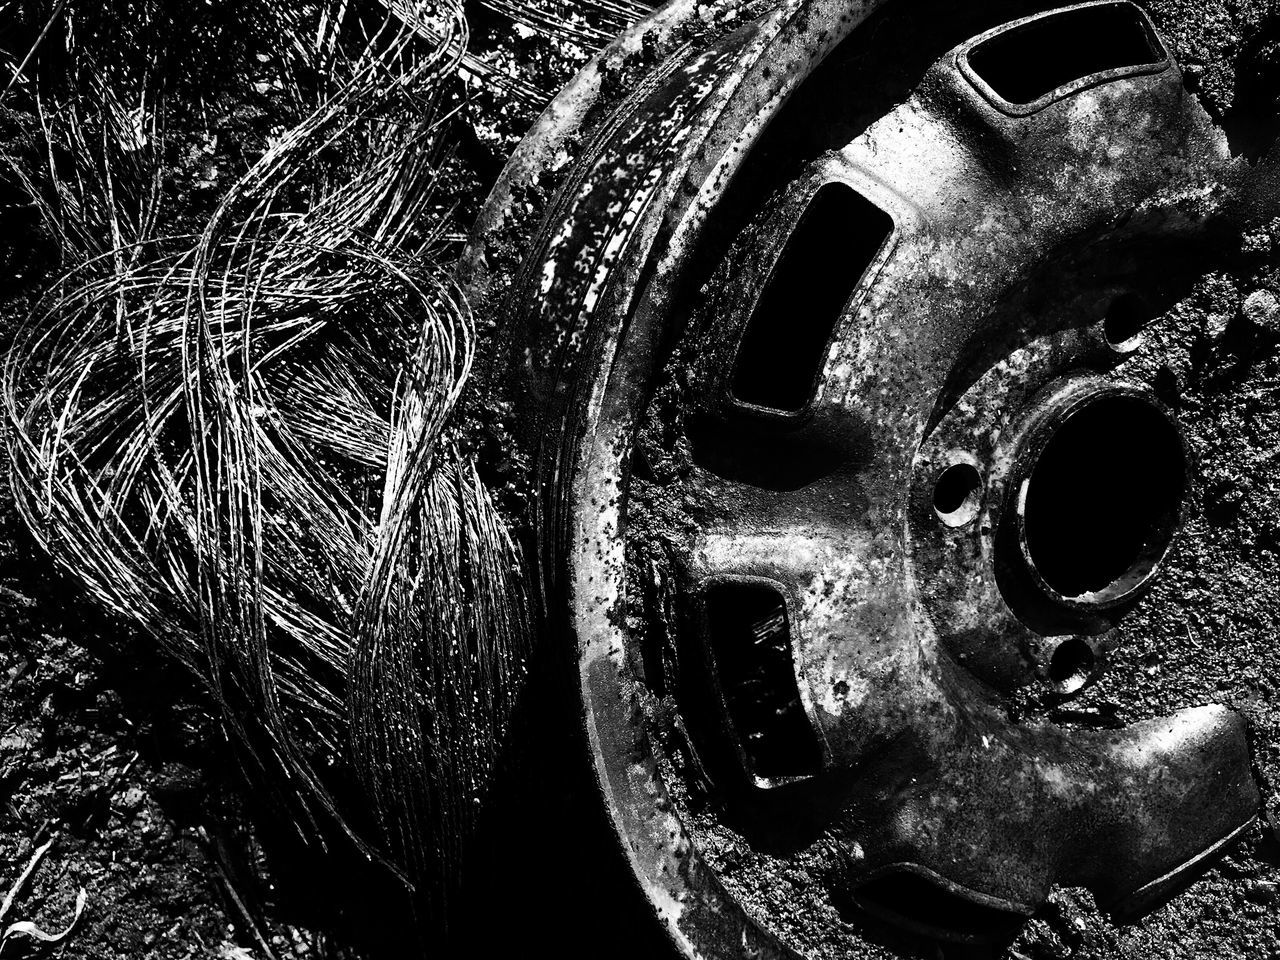 Close-up Machinery No People Machine Part Metal Outdoors Day Rubbish Trash Recycle Monochrome Photography